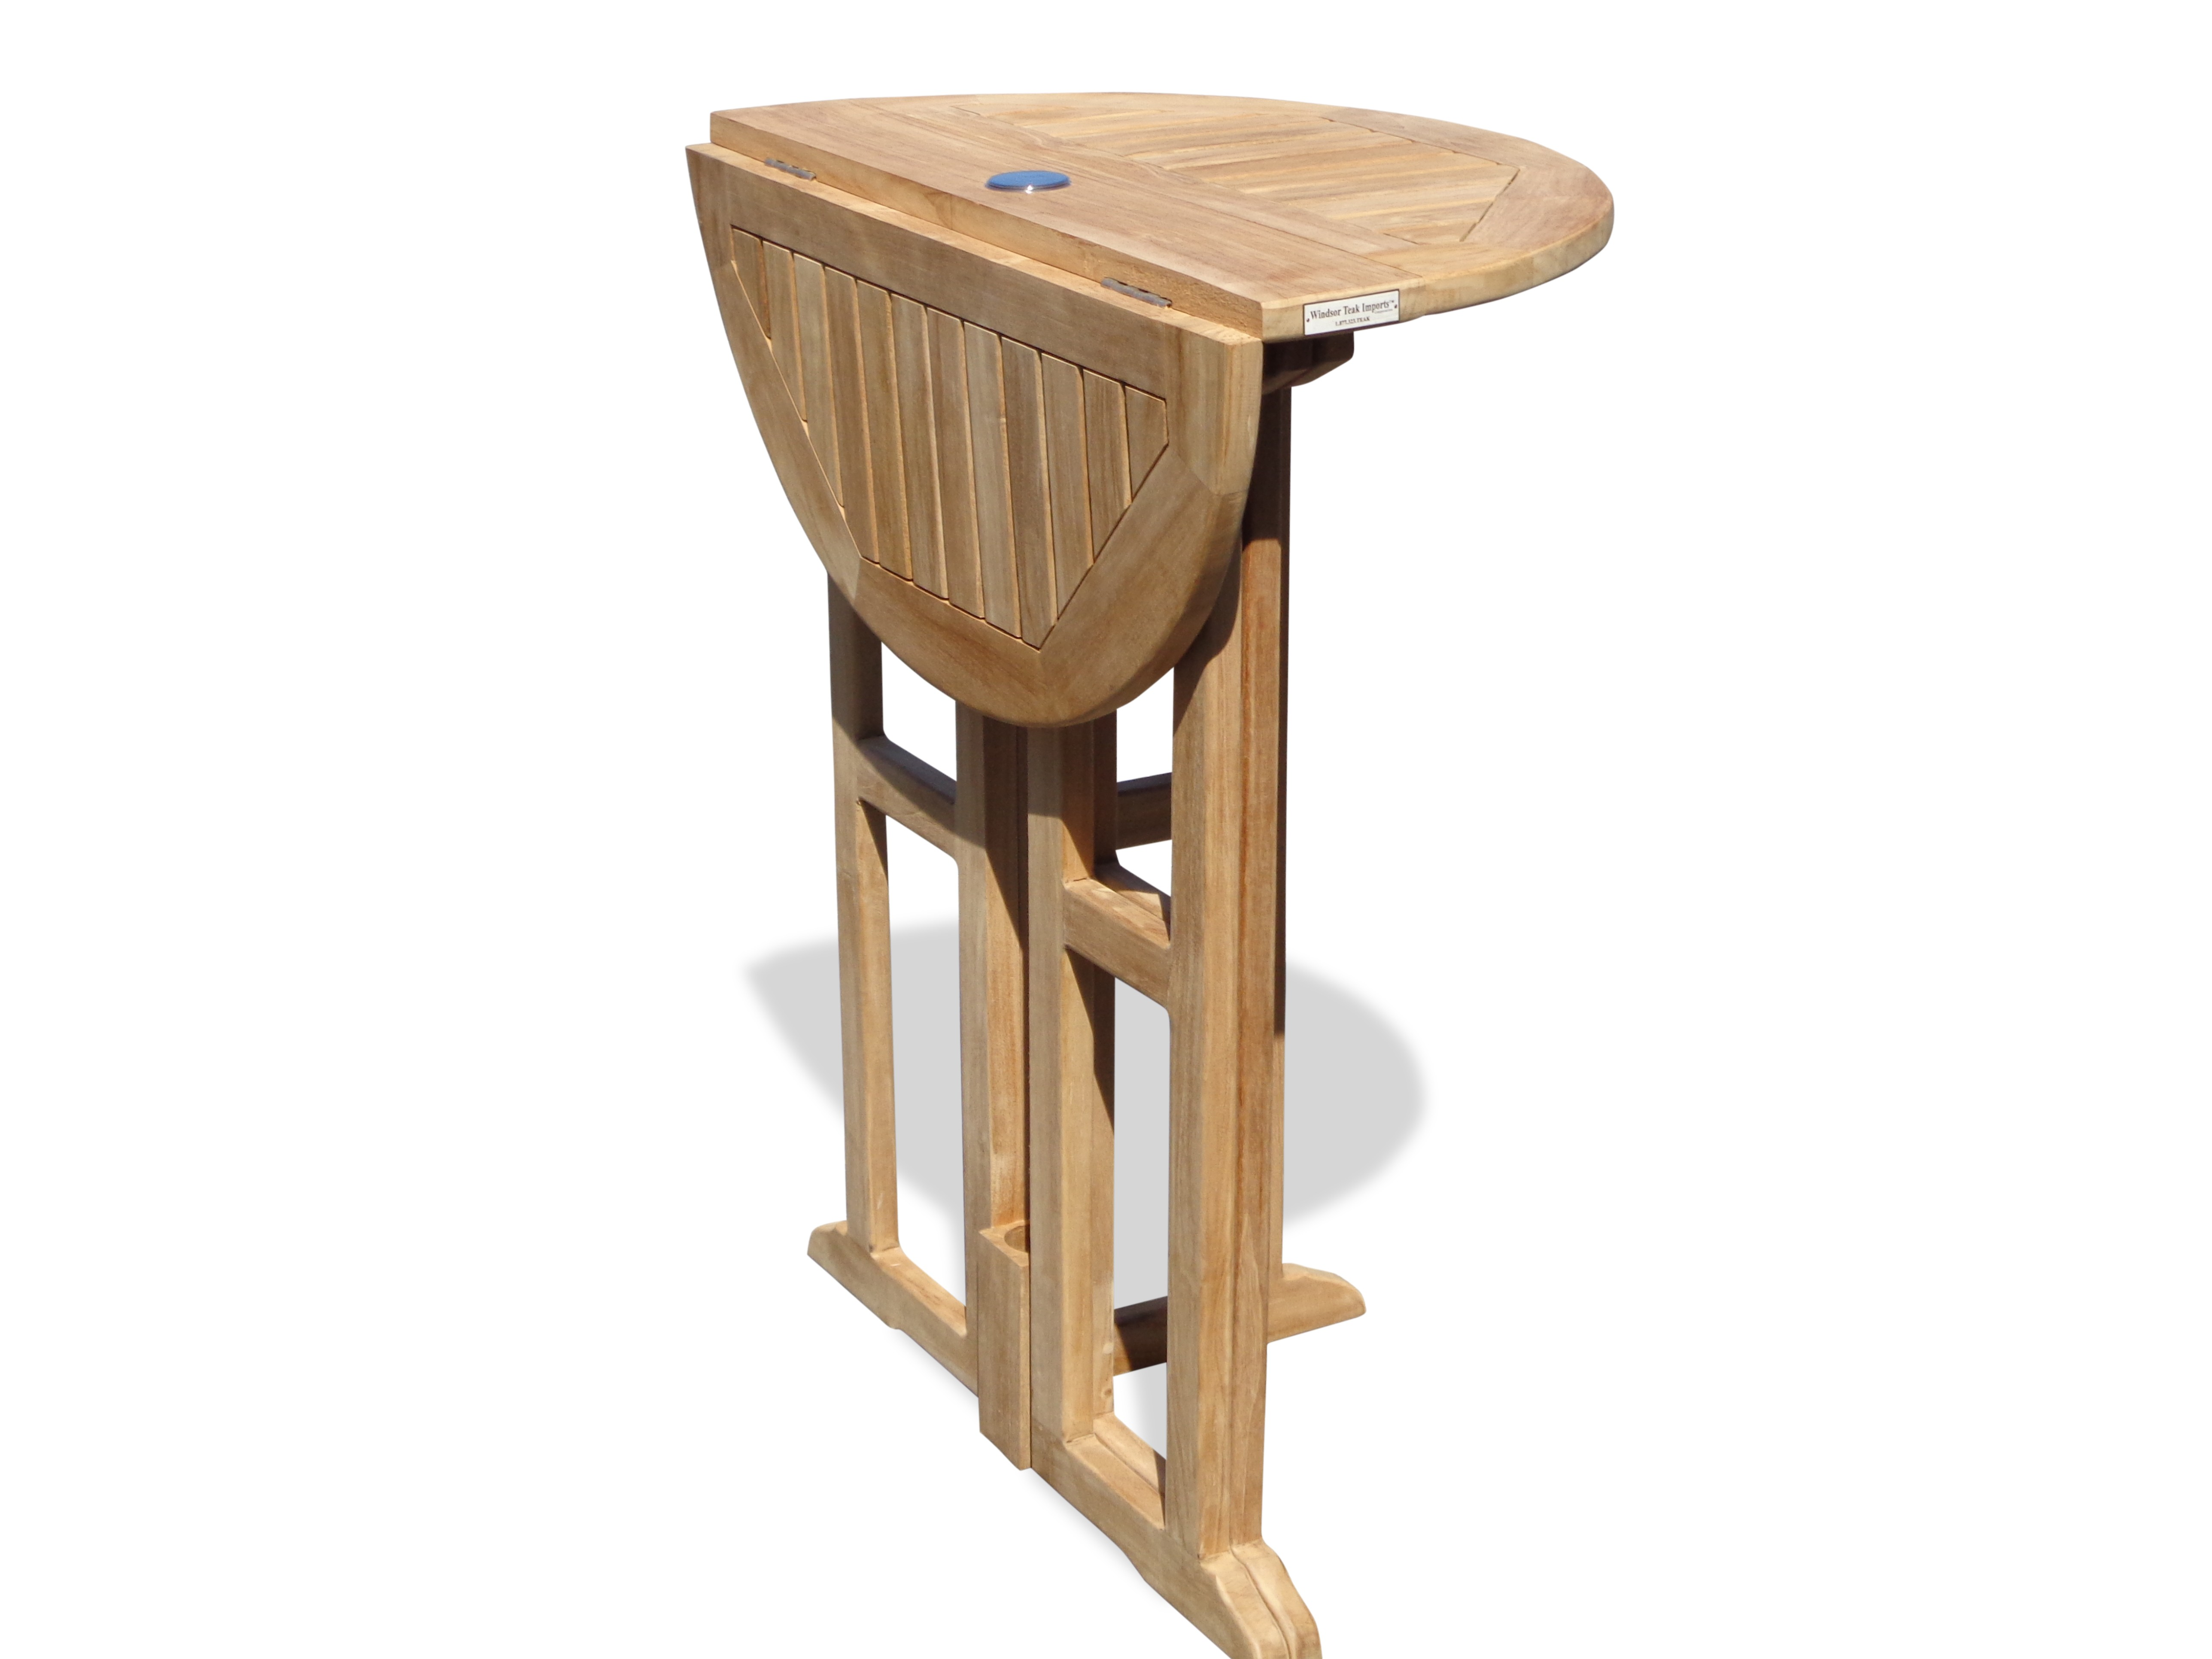 "Nassau 32"" Round Drop Leaf Folding Bar Table ...use with 1 Leaf Up or 2.... Makes 2 different tables!"